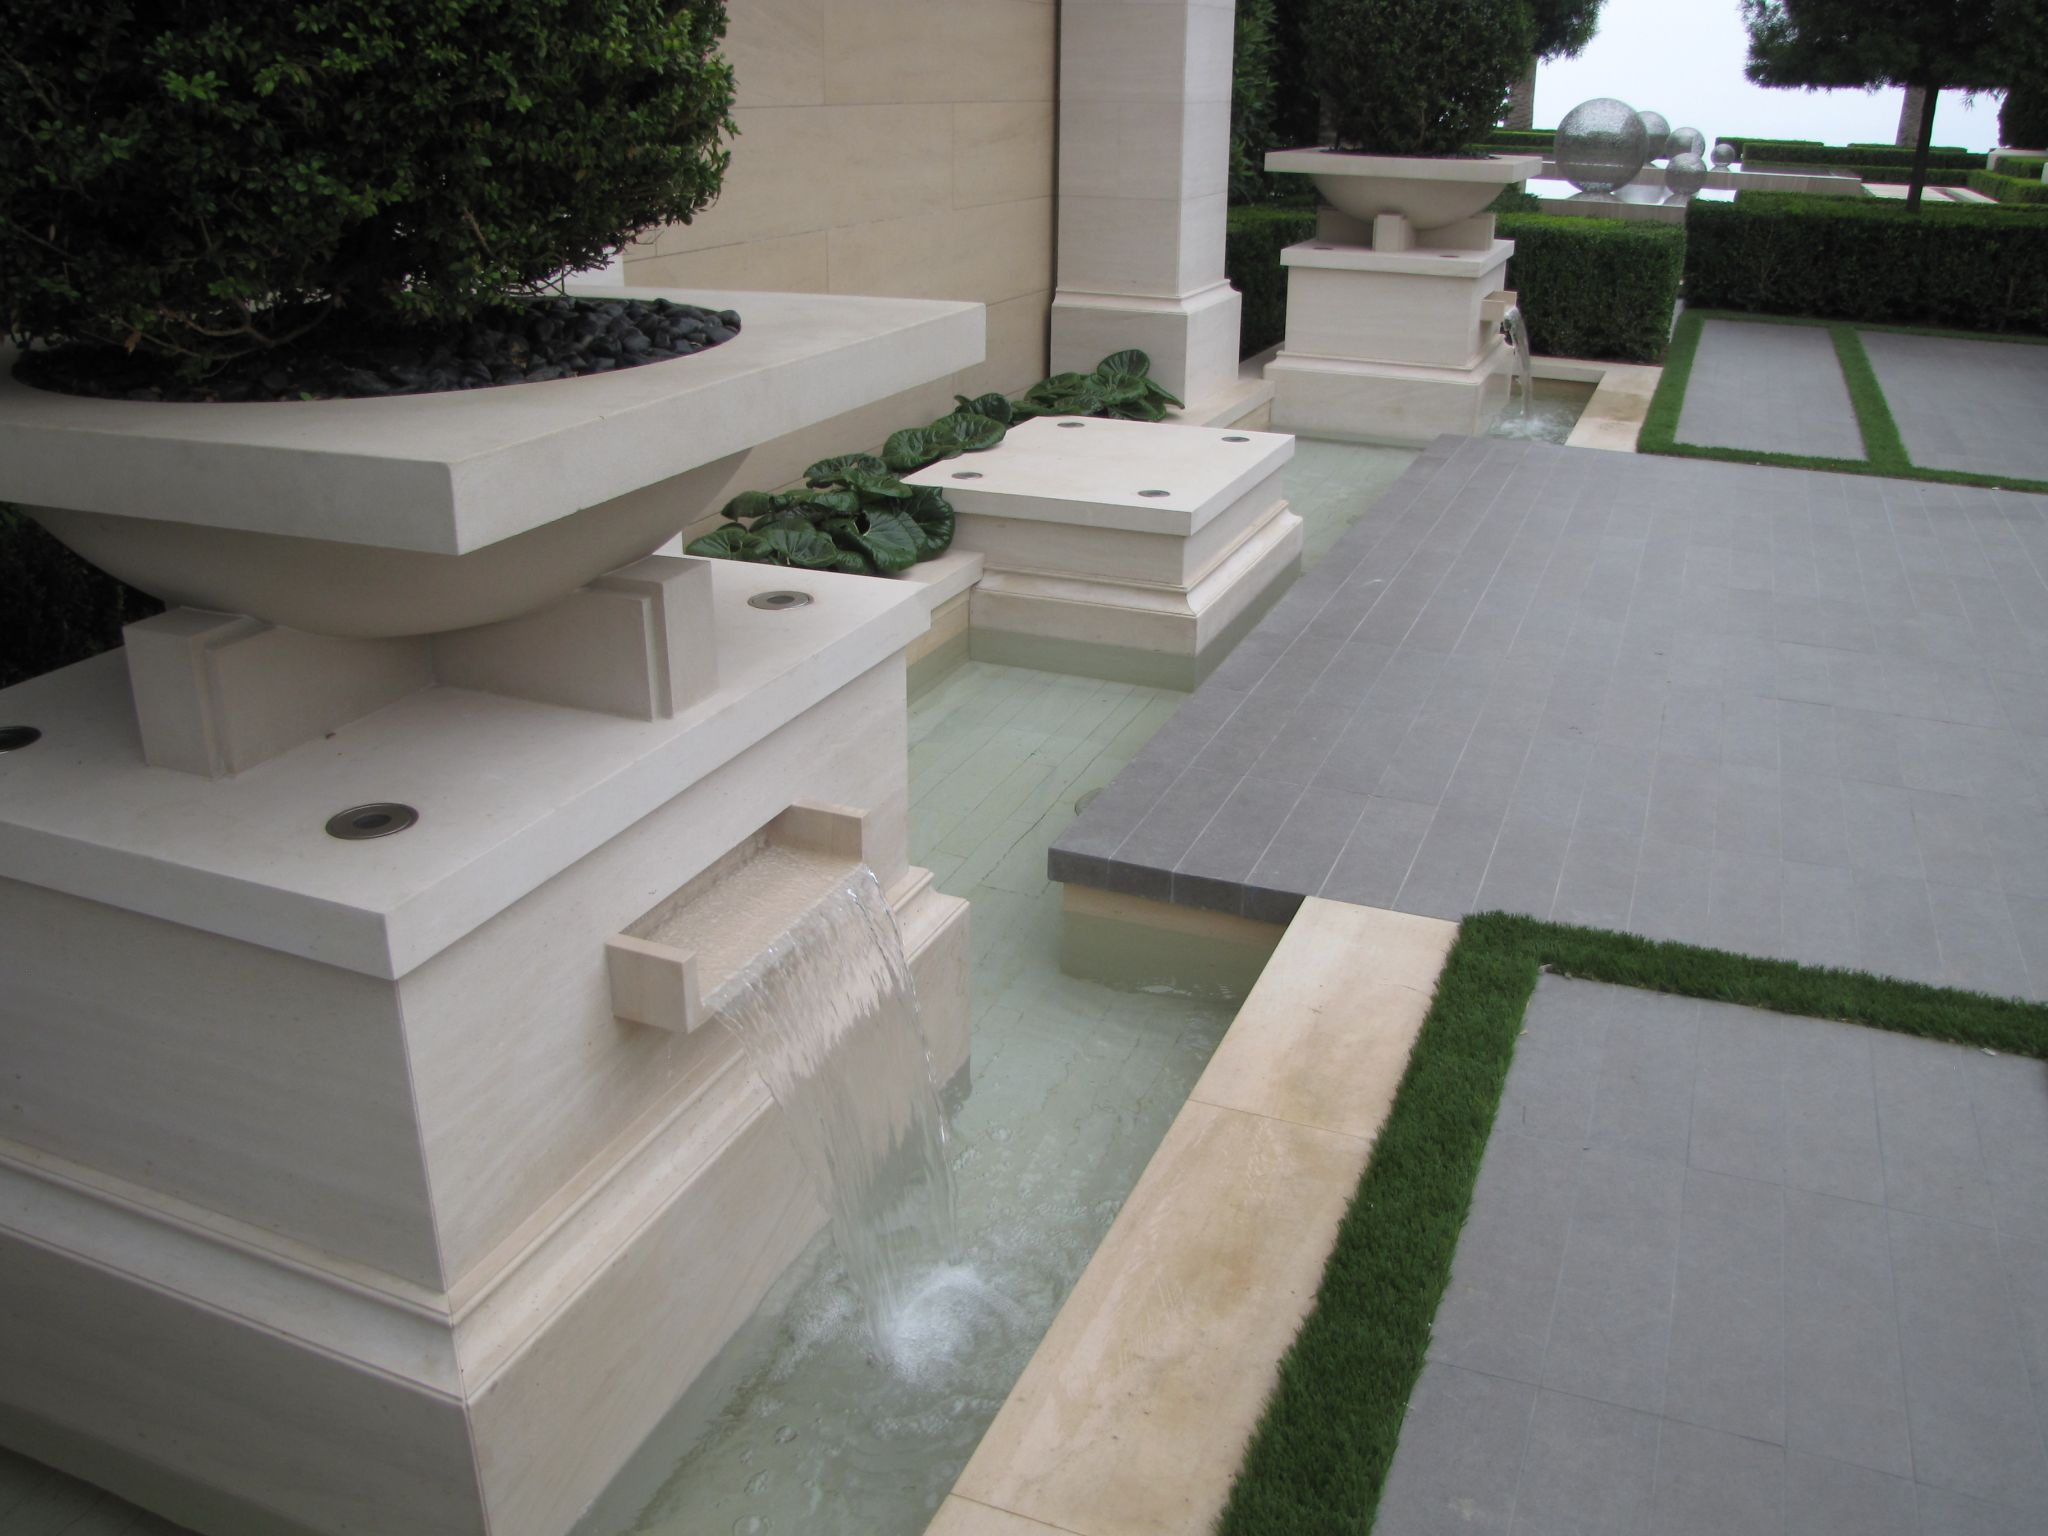 Specifying movement joints and sealants for tile and stone architects must specify the requirements for movement joint design and placement along with the correct type of sealant for filling those joints dailygadgetfo Image collections